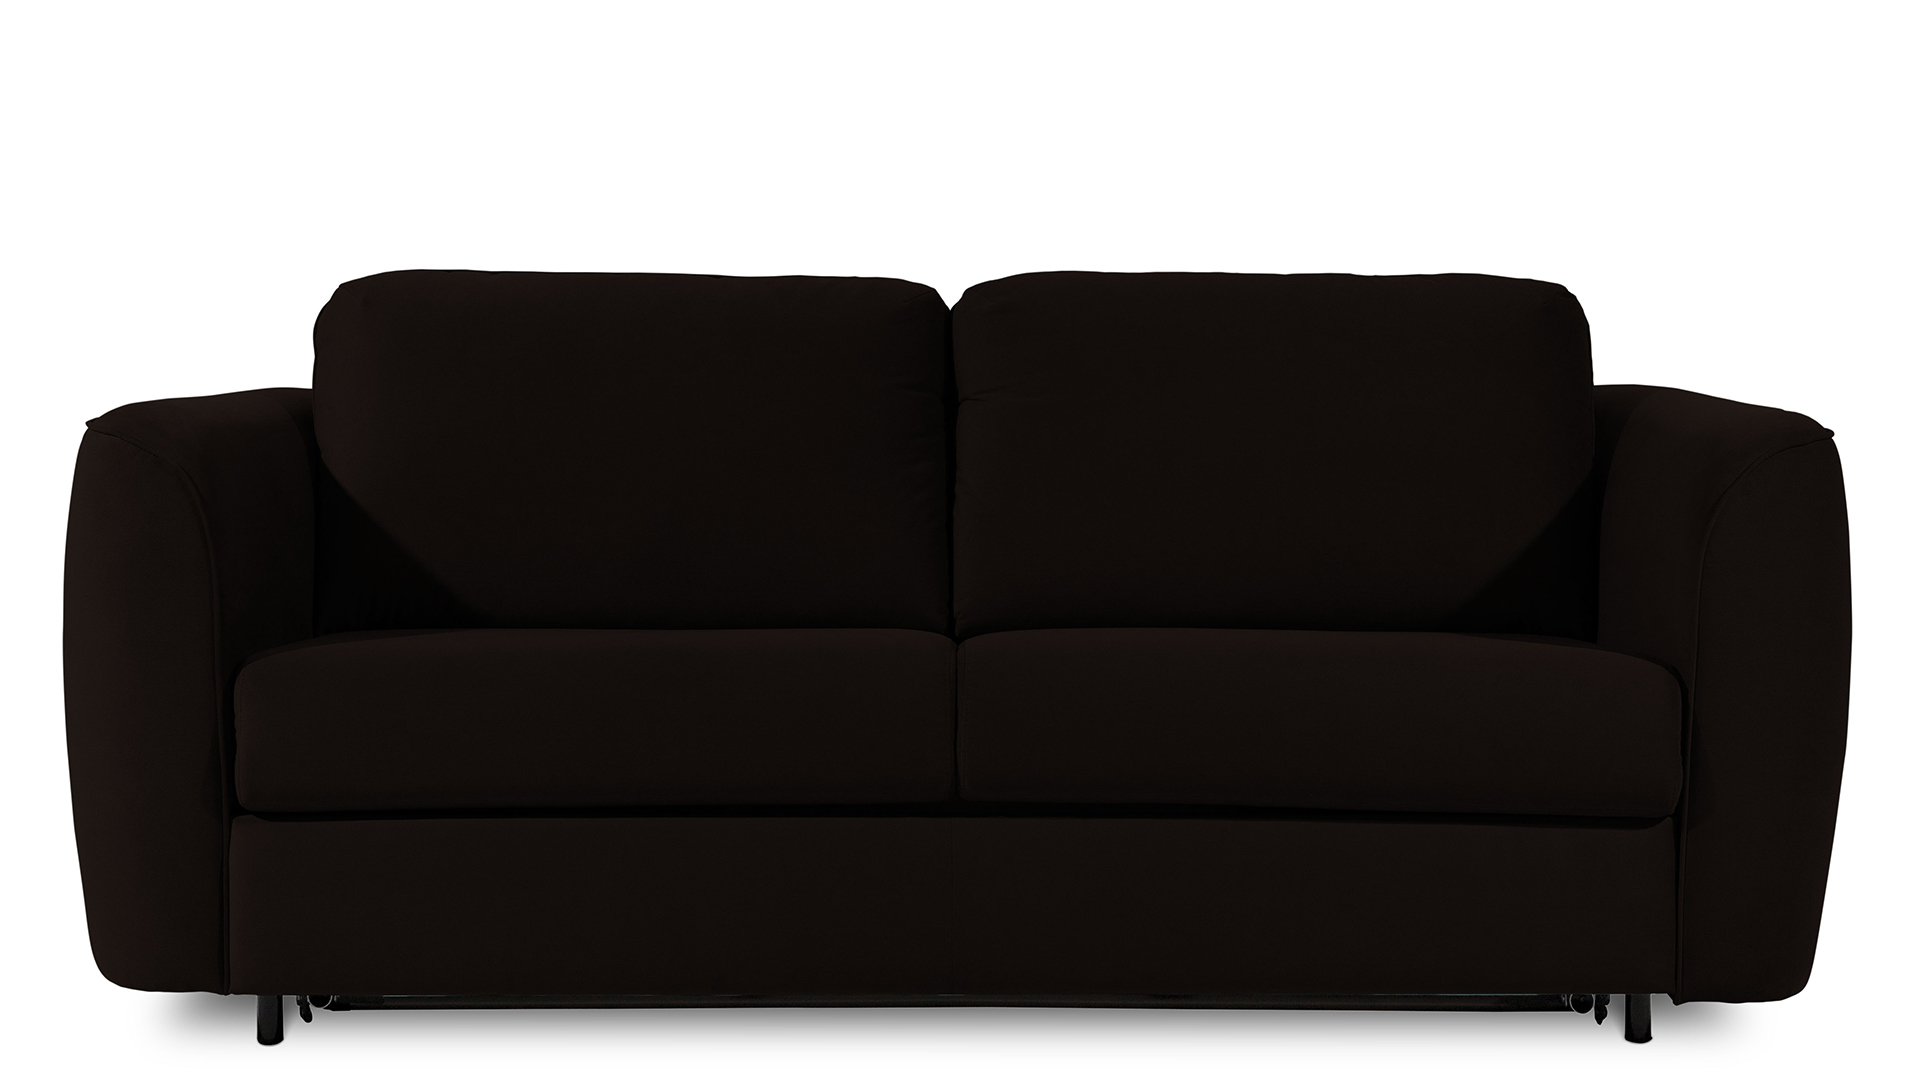 Sofa with sleeping function Cali 120